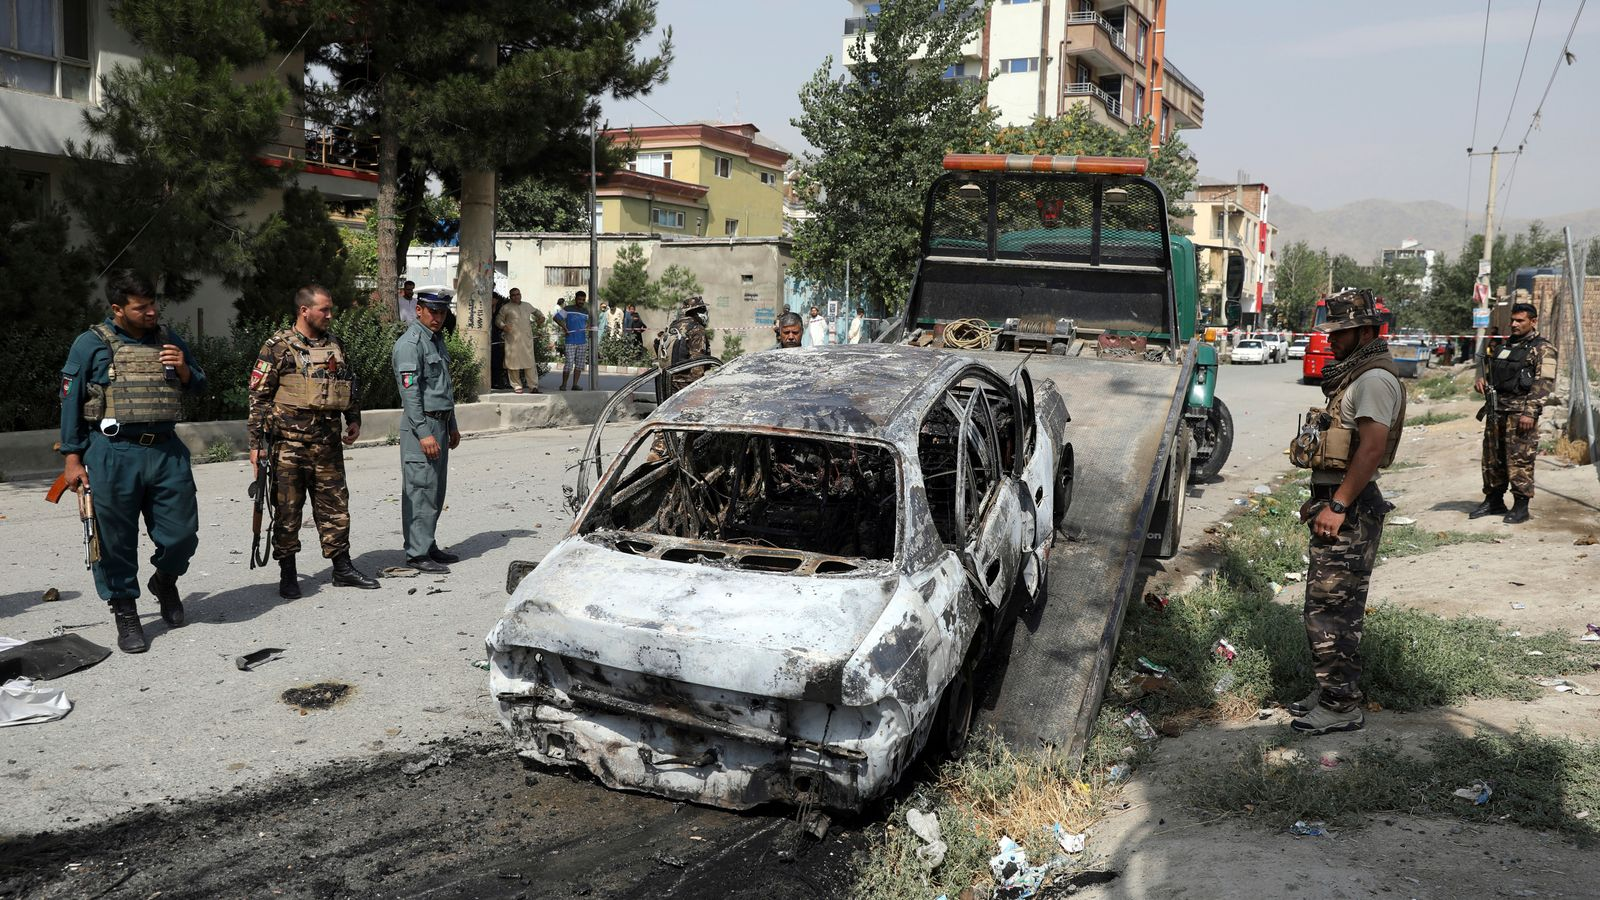 Afghanistan: Taliban attacks intensify following the withdrawal of western forces from the region